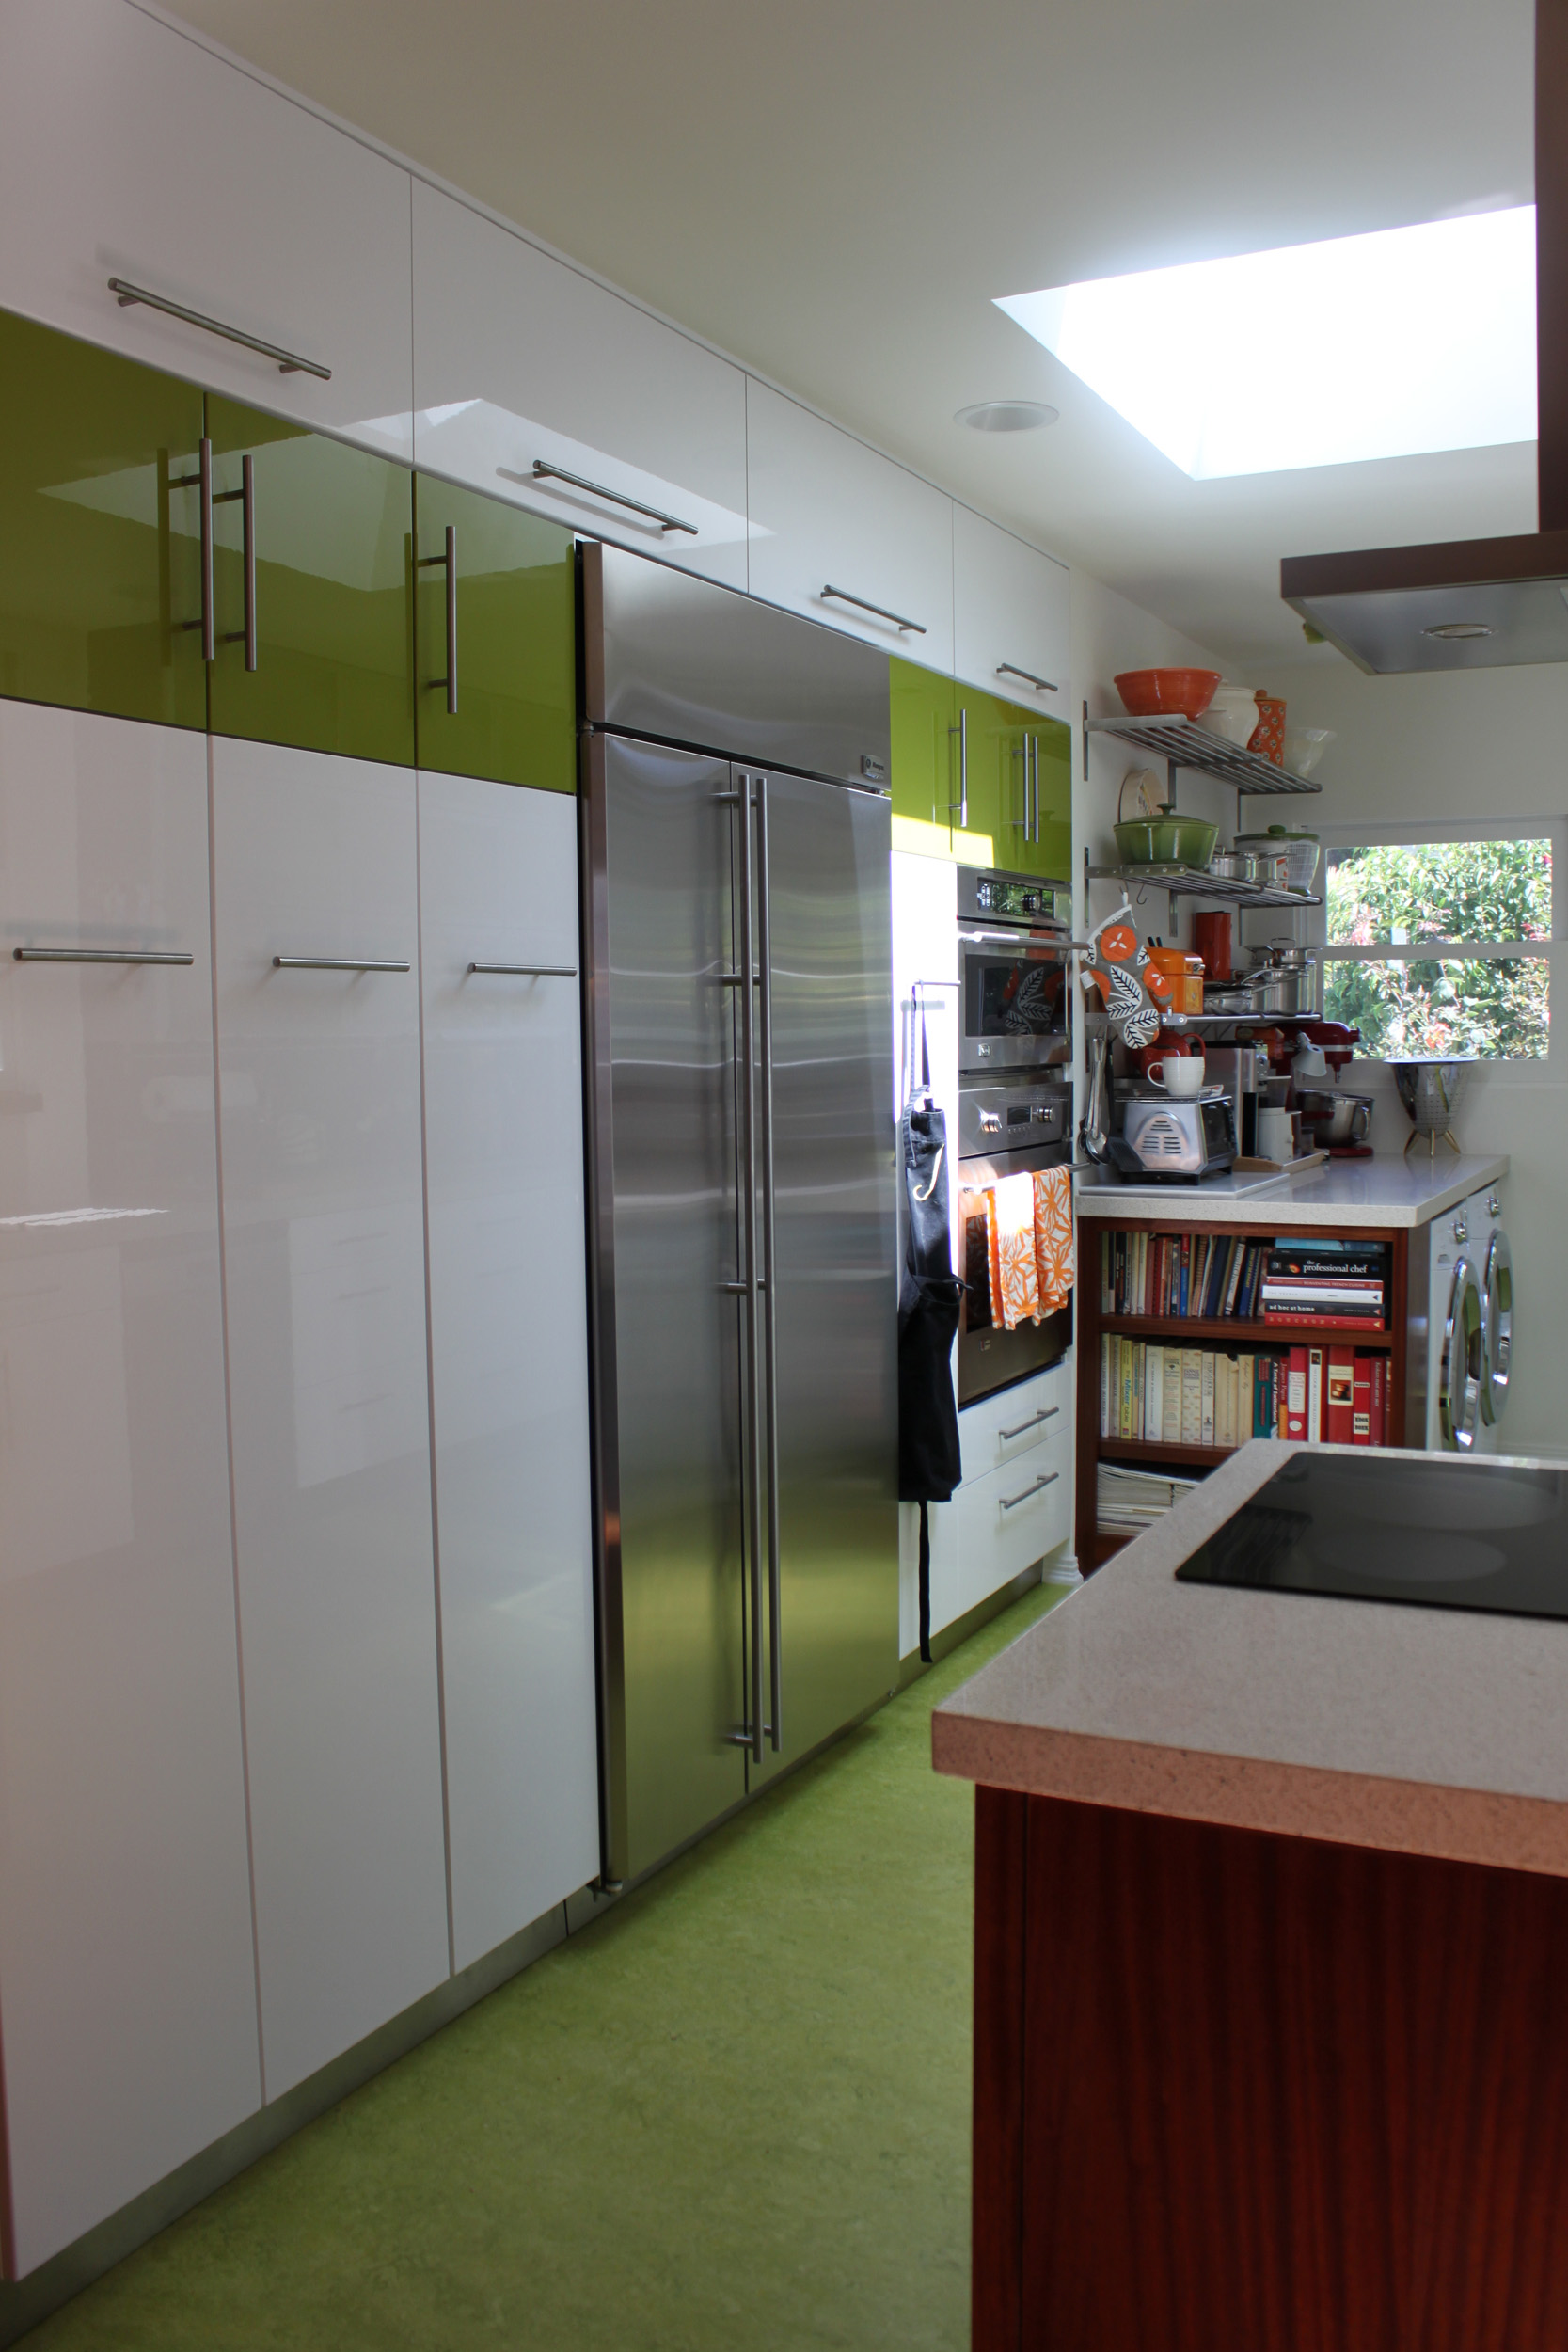 Small colorful modern kitchen with white and green cabinets, green flooring and custom-built oiled finish cabinetry